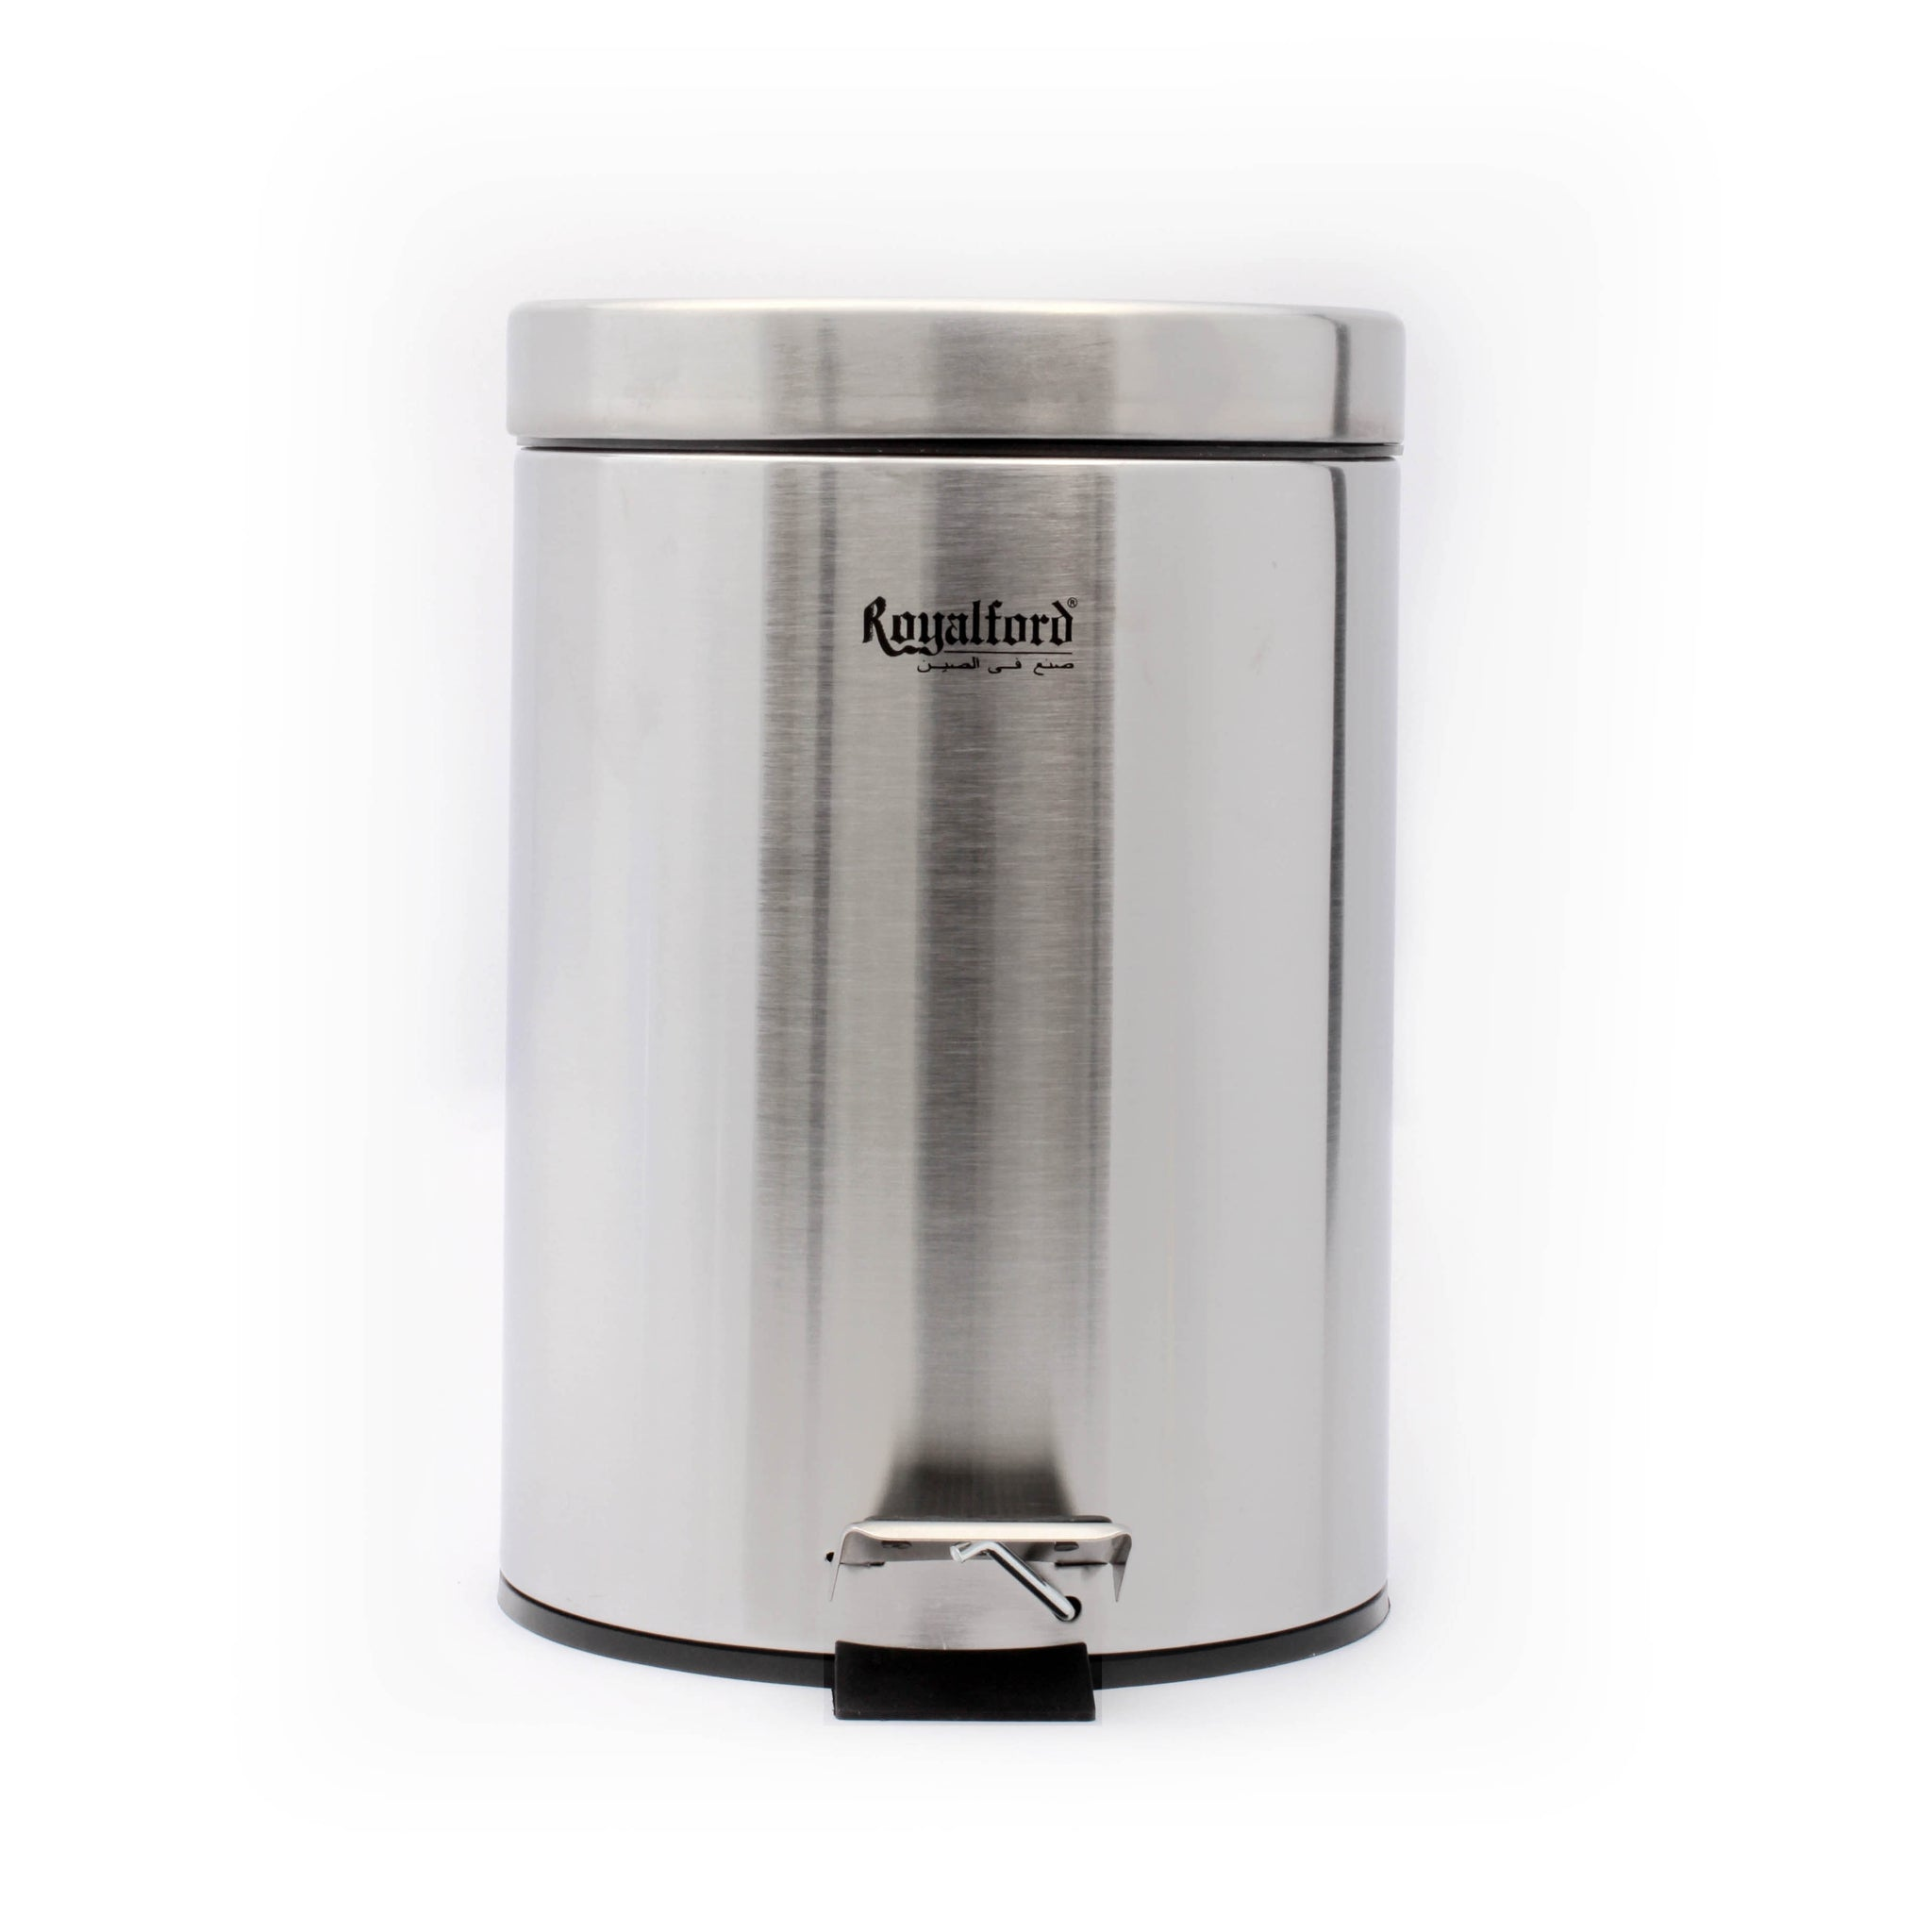 Royalford RF5125 5L Kitchen Pedal Trash Bin | Stainless Steel Rubbish Bin with Soft Close Lid, Foot Pedal, Flat Lid & Strong Plastic Inner Bucket | Fingerprint Proof & Rust Resistant |Odor Free & Hygienic